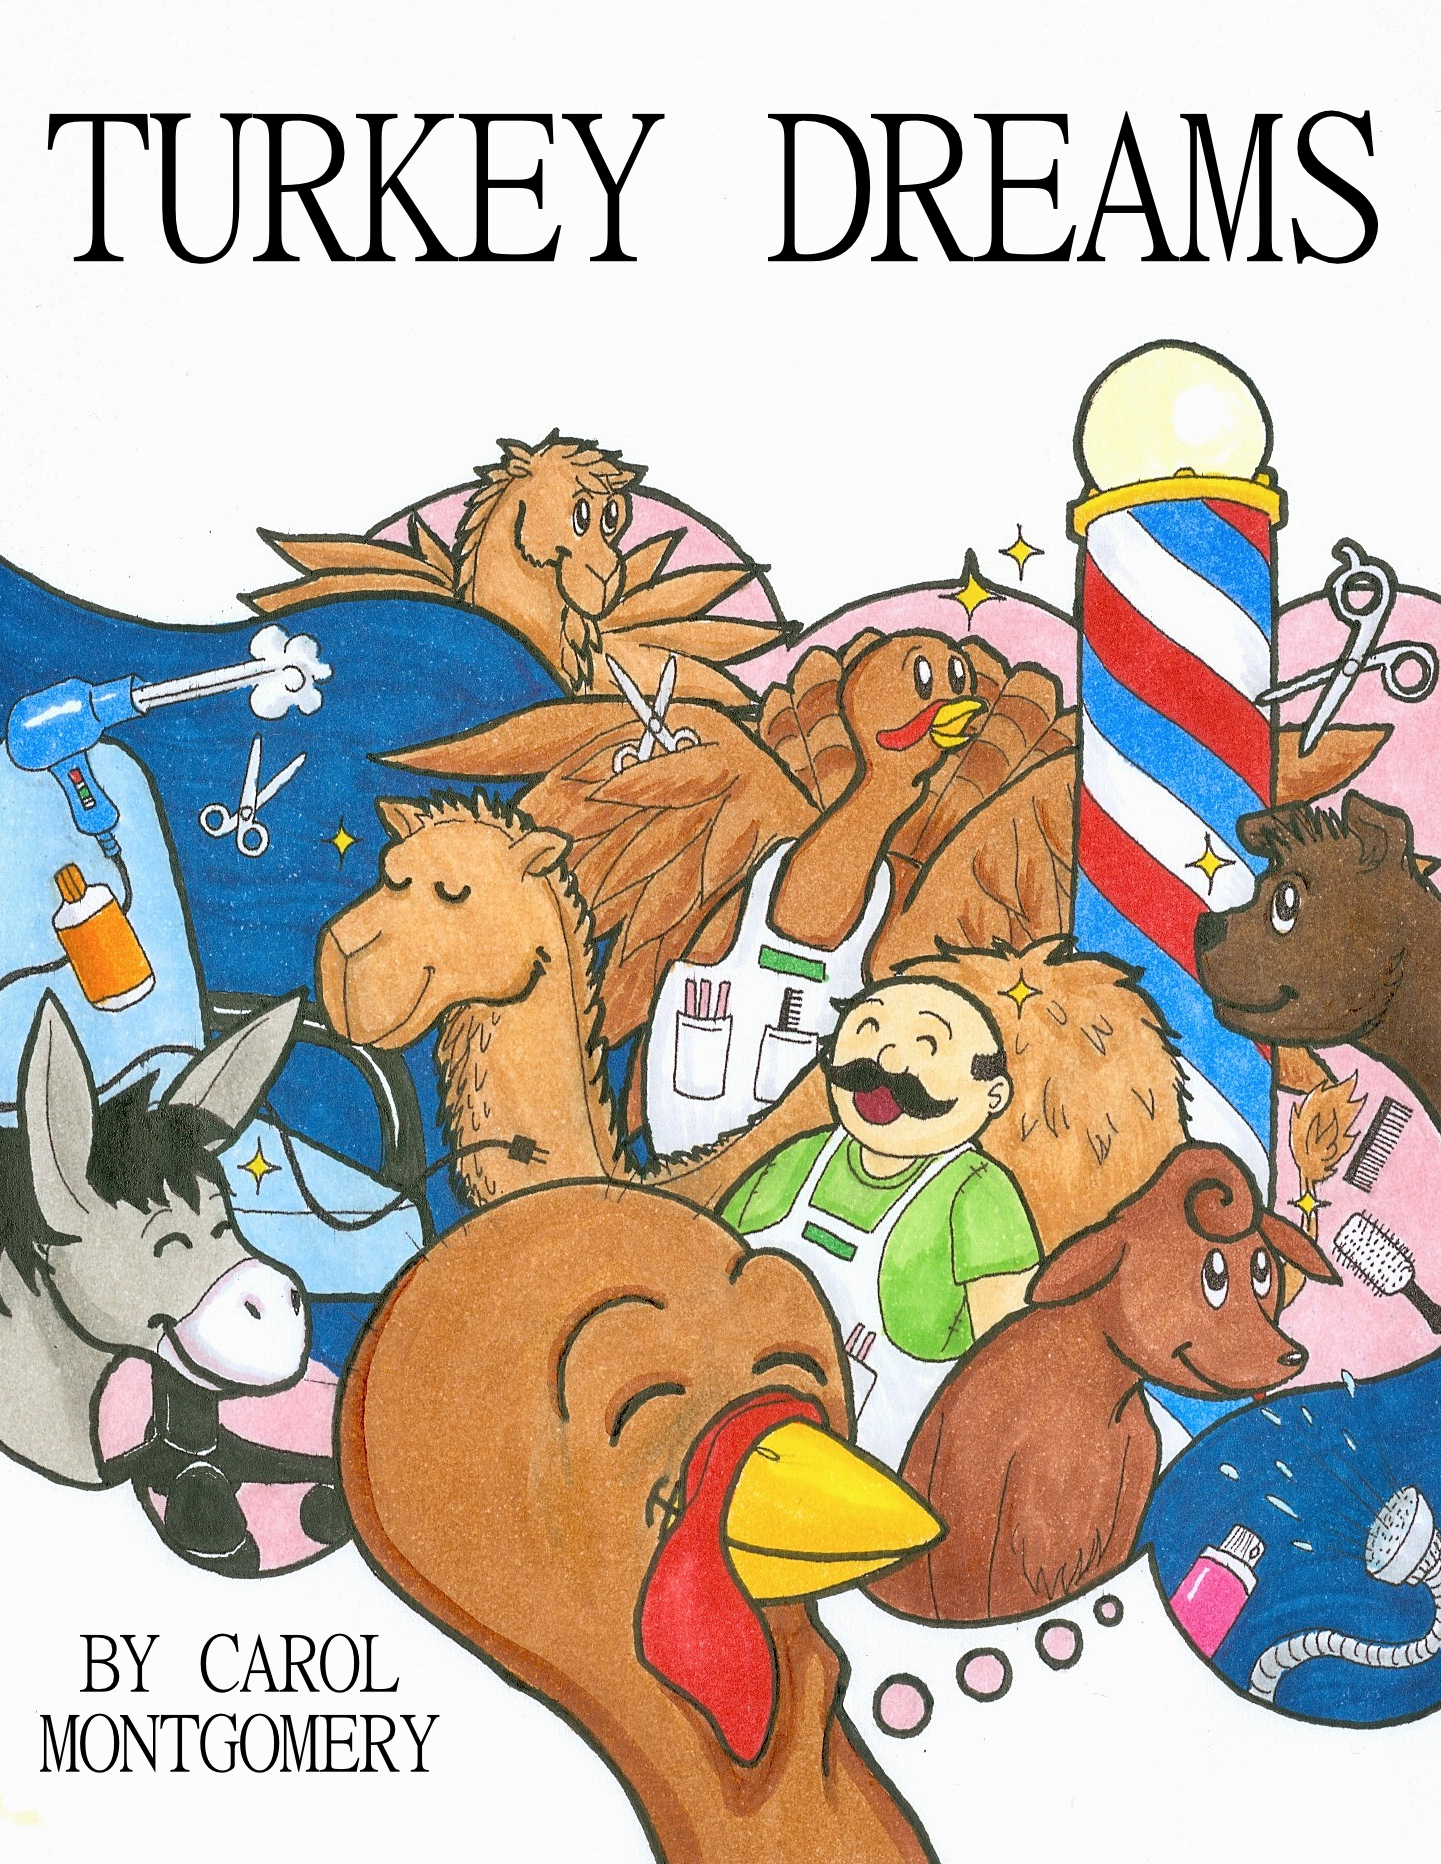 Turkey Dreams: Entrepreneurship Readers Theater with Flexible Curriculum Helps